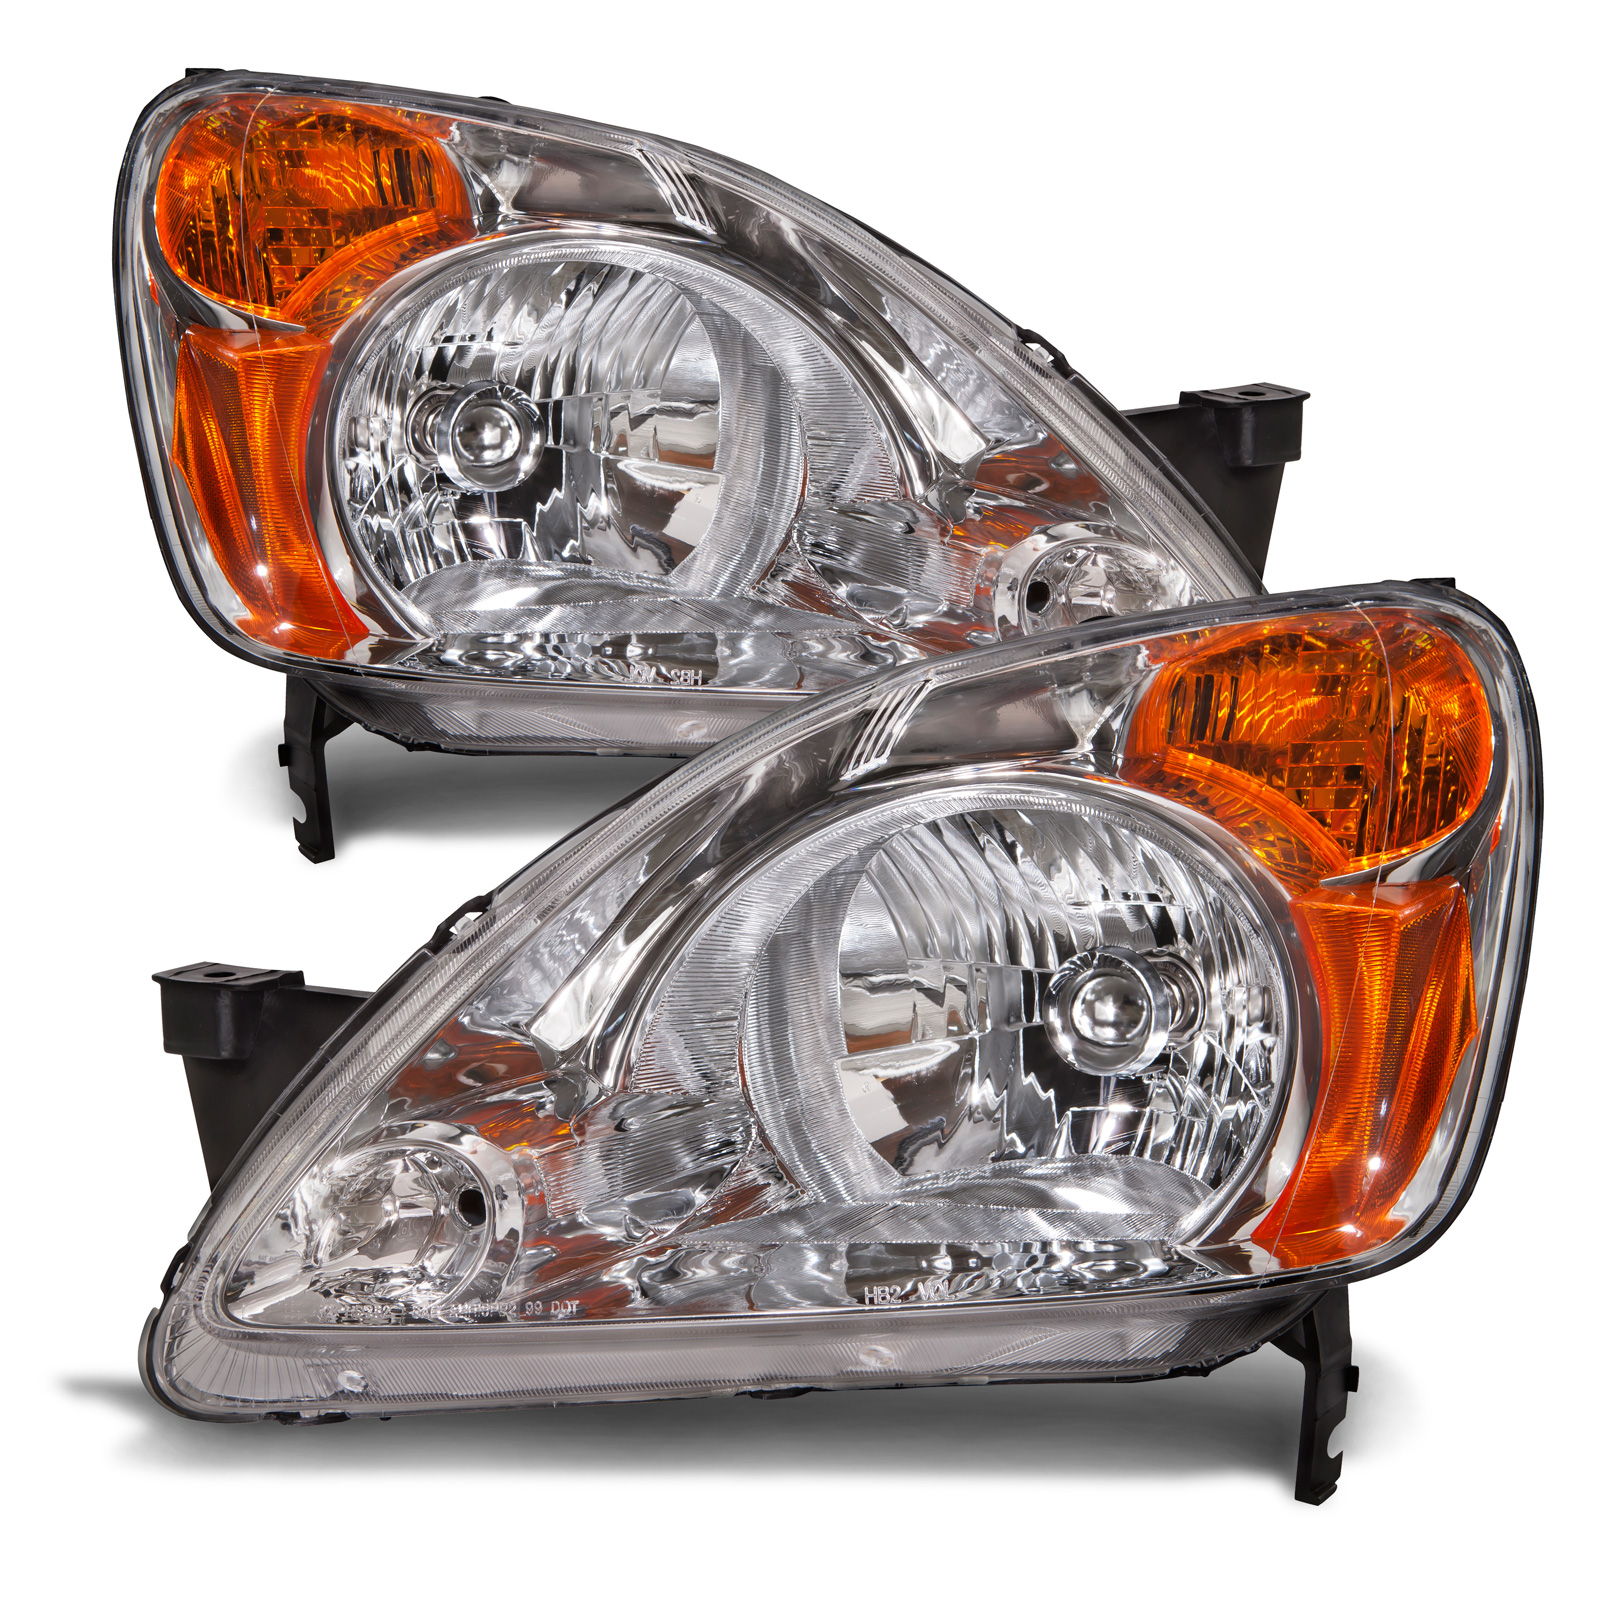 02 04 honda cr v headlights headlamps pair set halogen. Black Bedroom Furniture Sets. Home Design Ideas